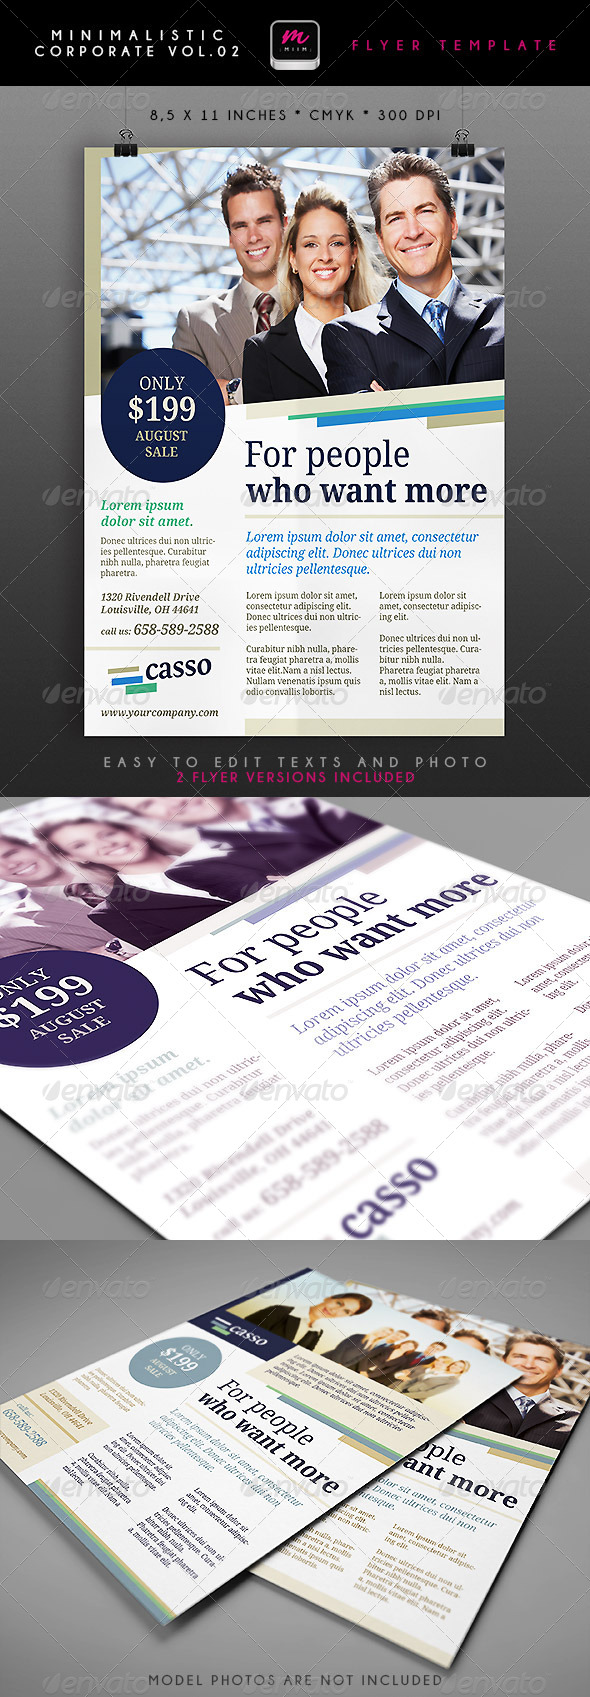 GraphicRiver Minimalistic Corporate Flyer 2 5006926